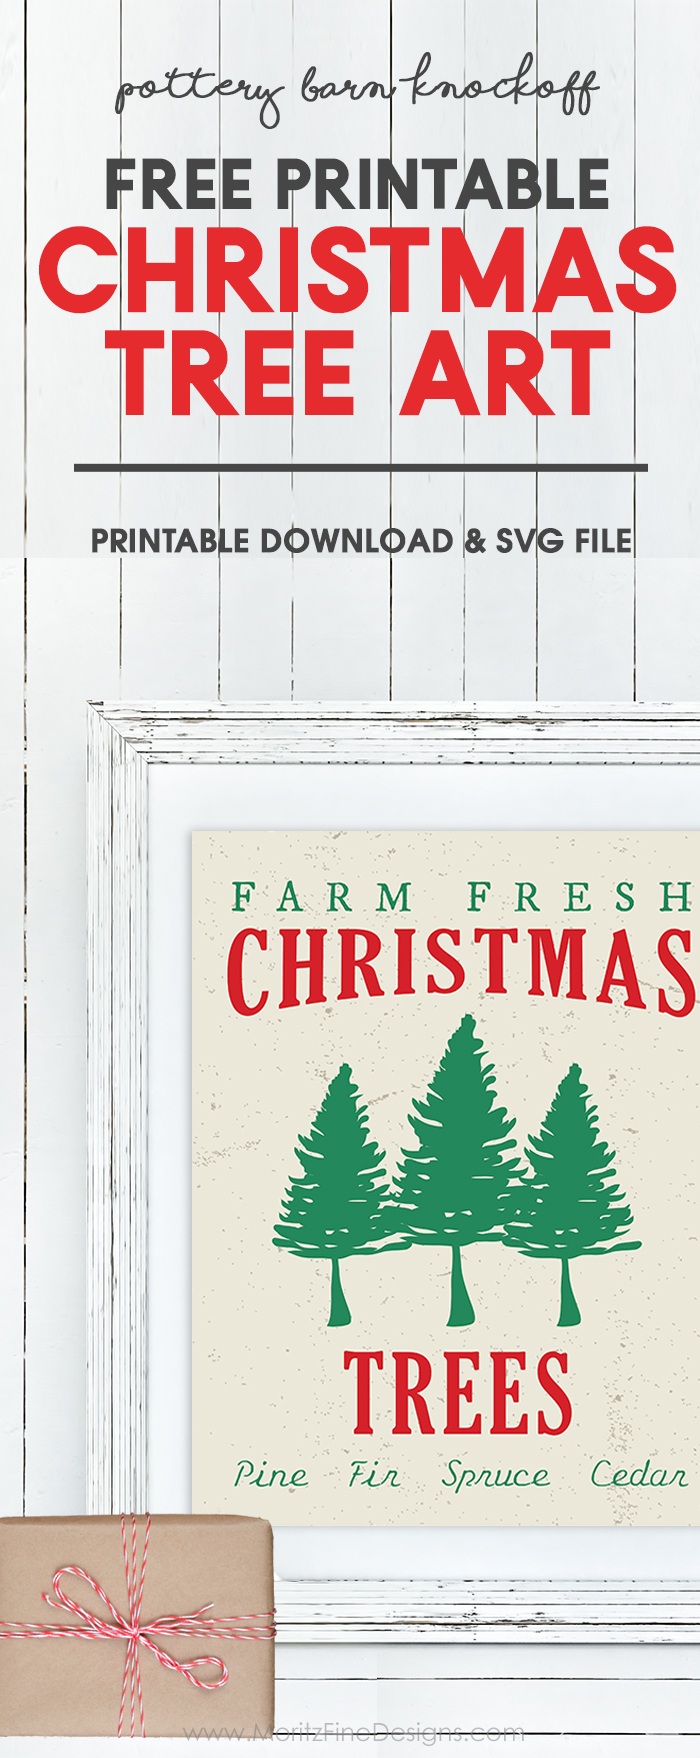 Update your Christmas Decor with this free printable Pottery Barn knockoff Christmas Tree Art Printable. The design is also available in an svg cut file for your Cricut or Silhouette Machine. I made it into an oversize print for poster size!  #christmasdecoration